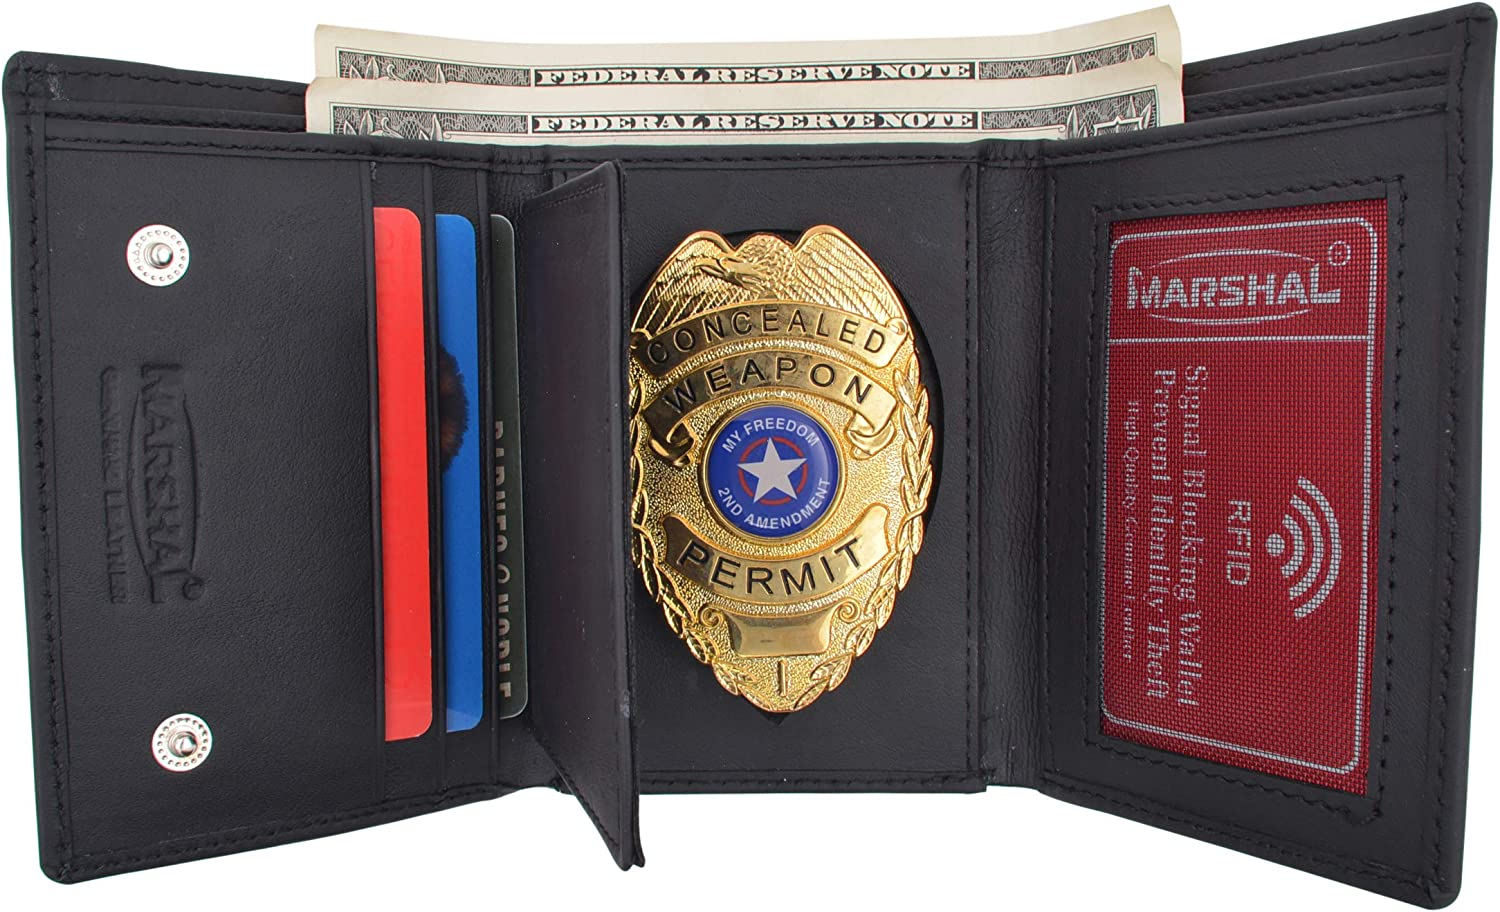 Genuine Leather RFID Blocking Police Badge Holder Trifold Wallet Black with Snap Closure